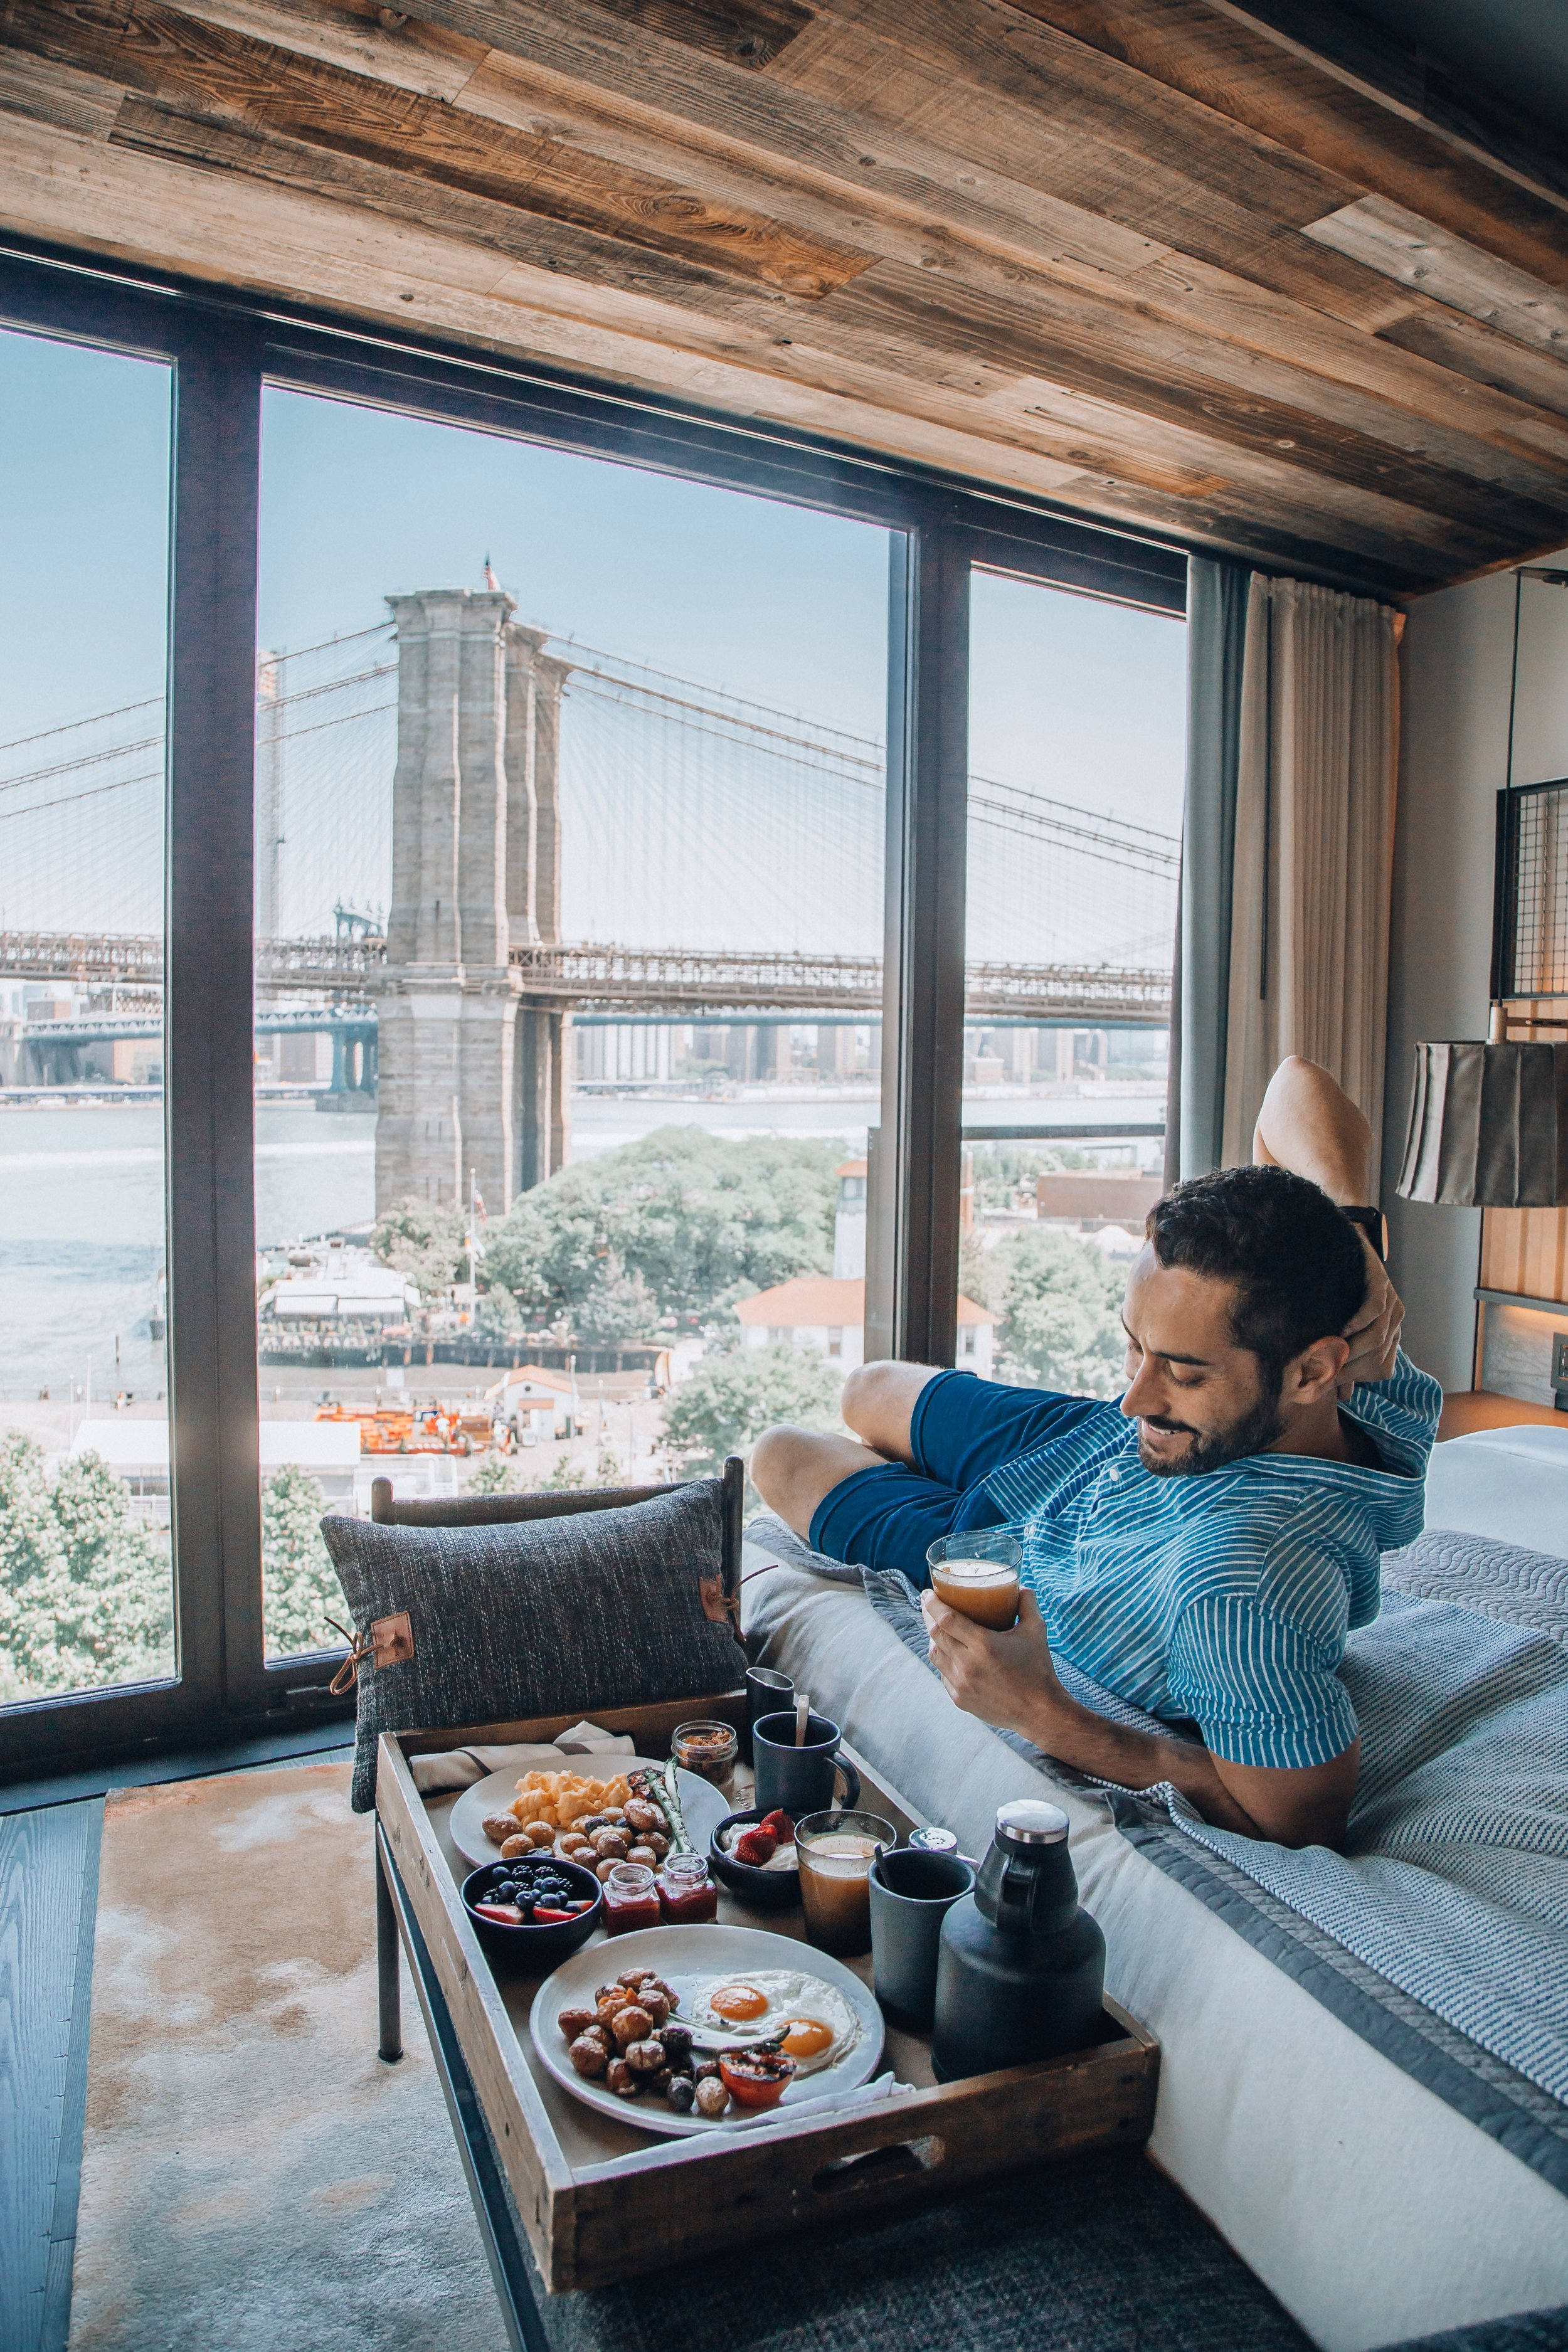 The Residence is the hotel's largest apartment with 2 suites, a spacious living room and breathtaking views of the Brooklyn bridge and Manhattan skyline.